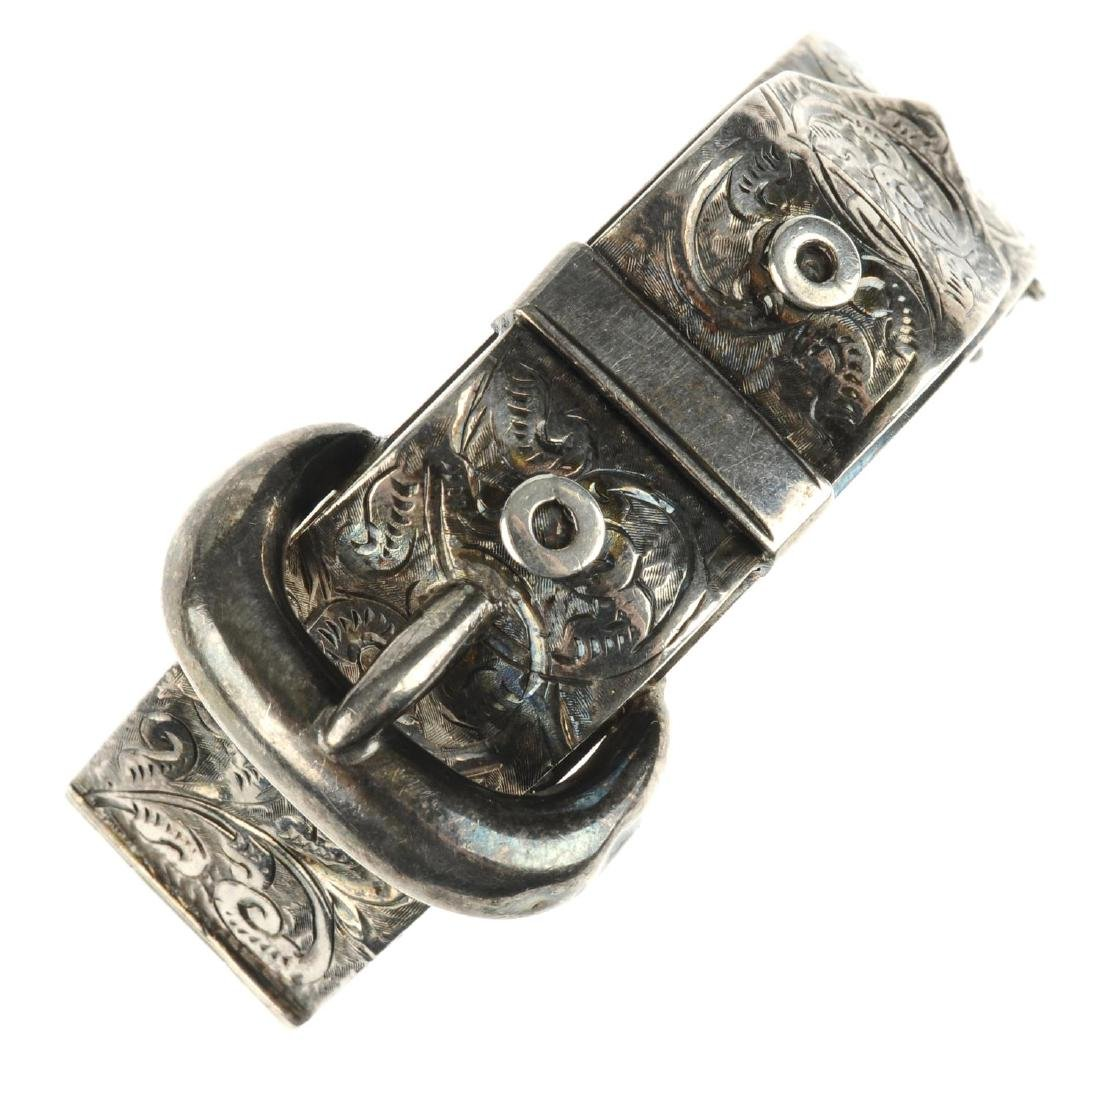 A late Victorian silver hinged buckle bangle. With